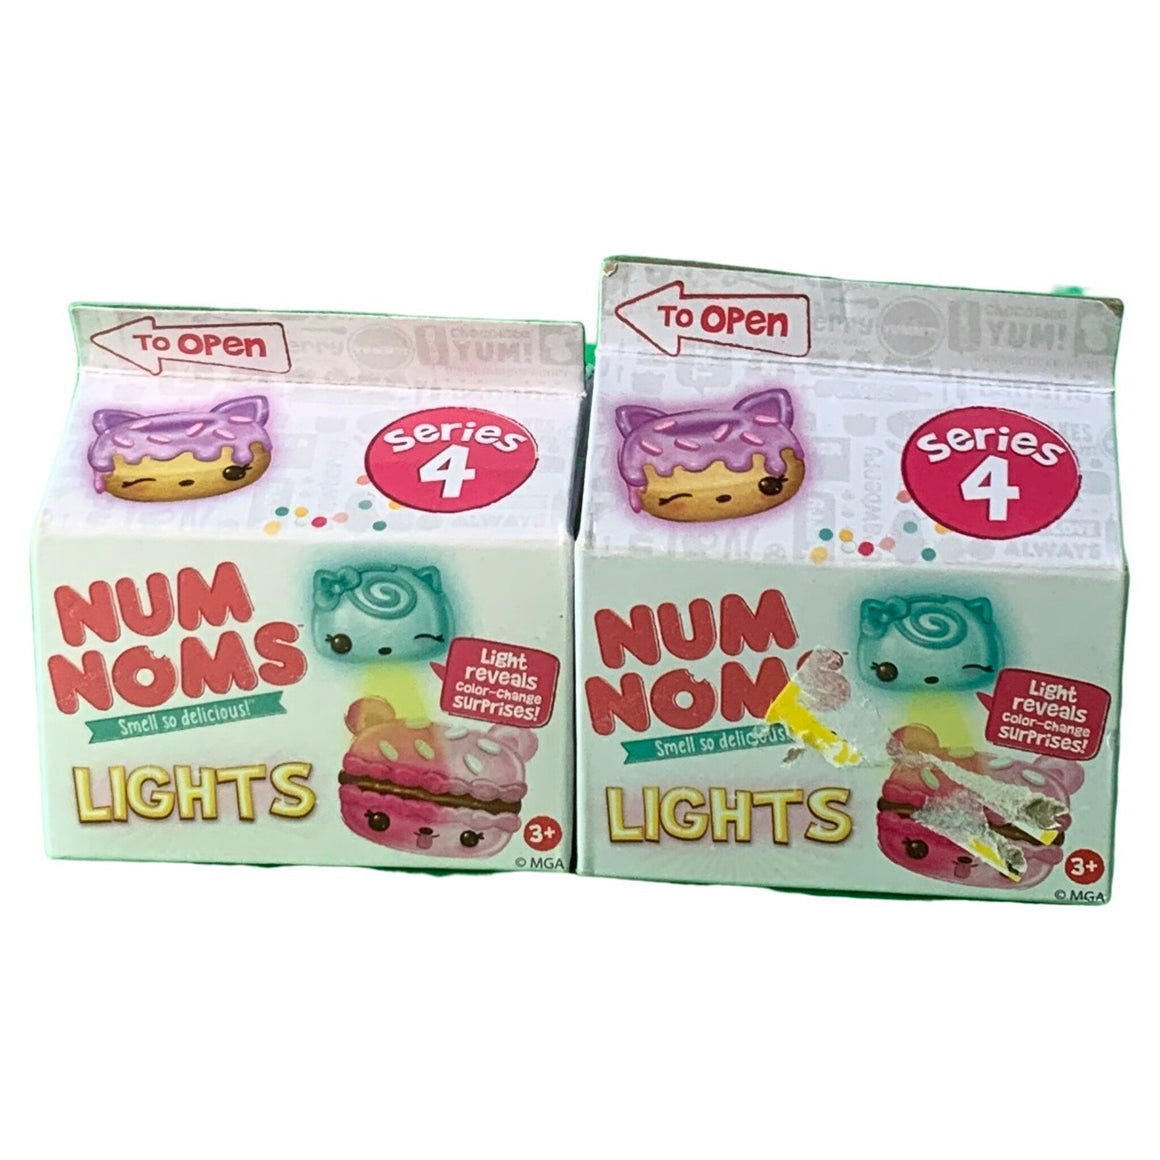 Lights Mystery Pack Series 4-1L - Num Noms